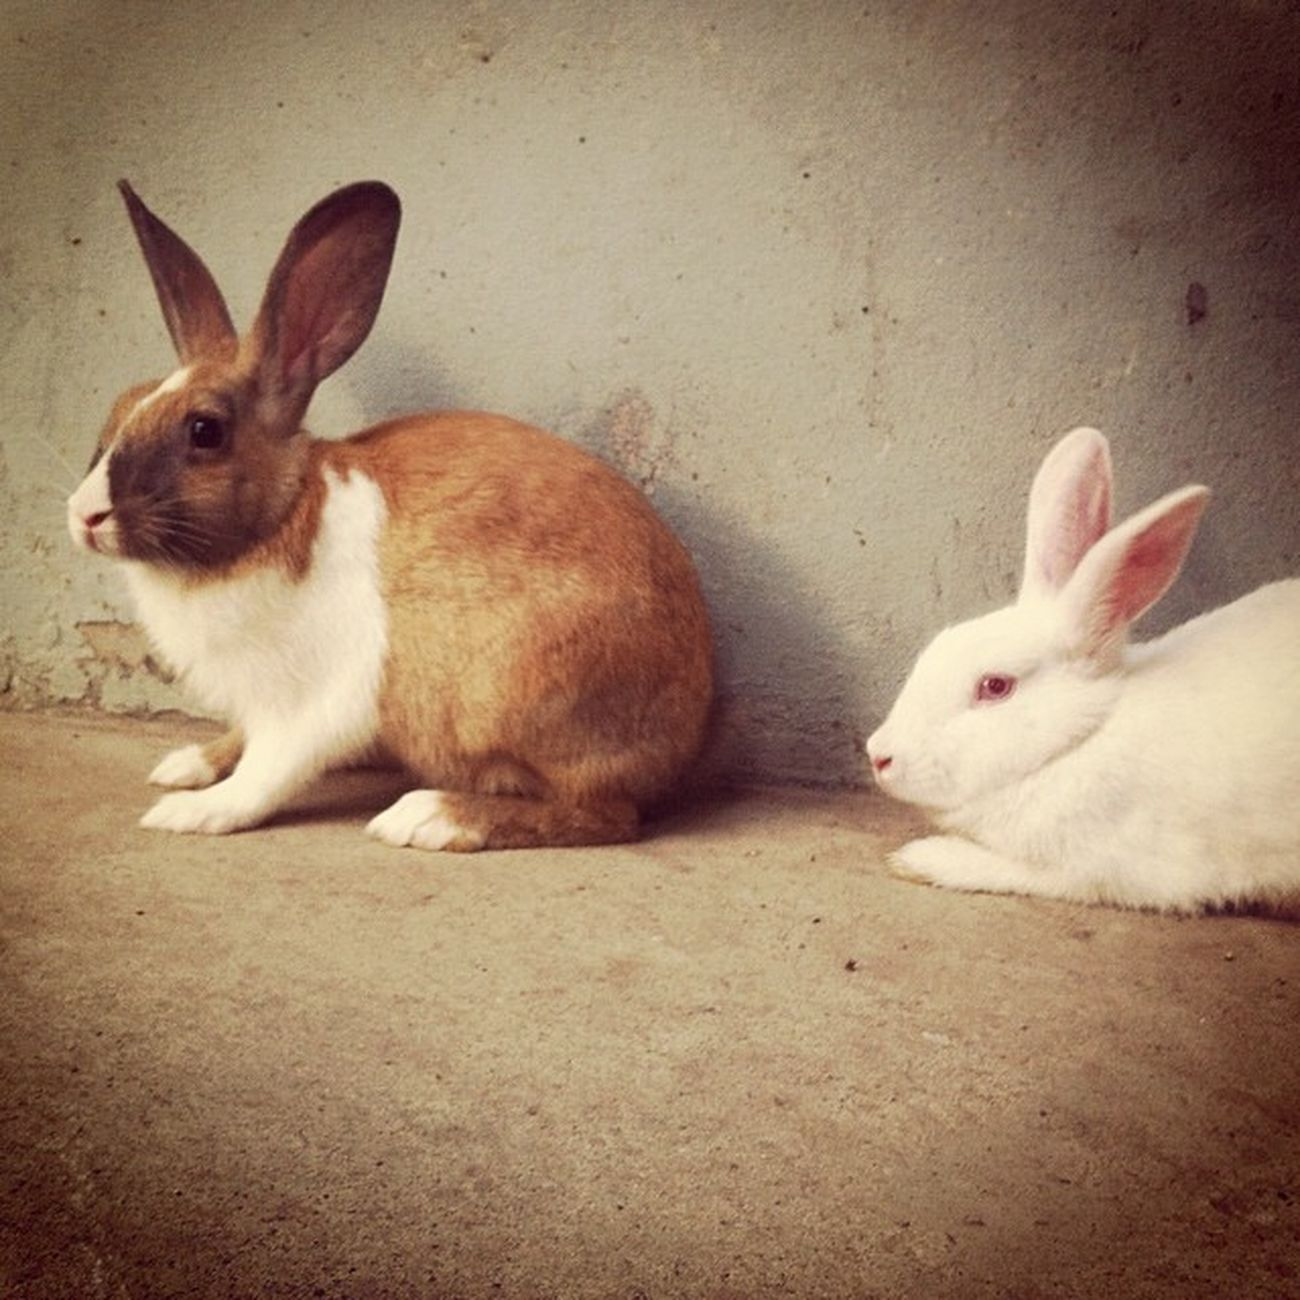 bugs N bunny ! Rabbit Pet Home Yard Play Chaktai Chittagong IPhone Insta Instapics Instagram